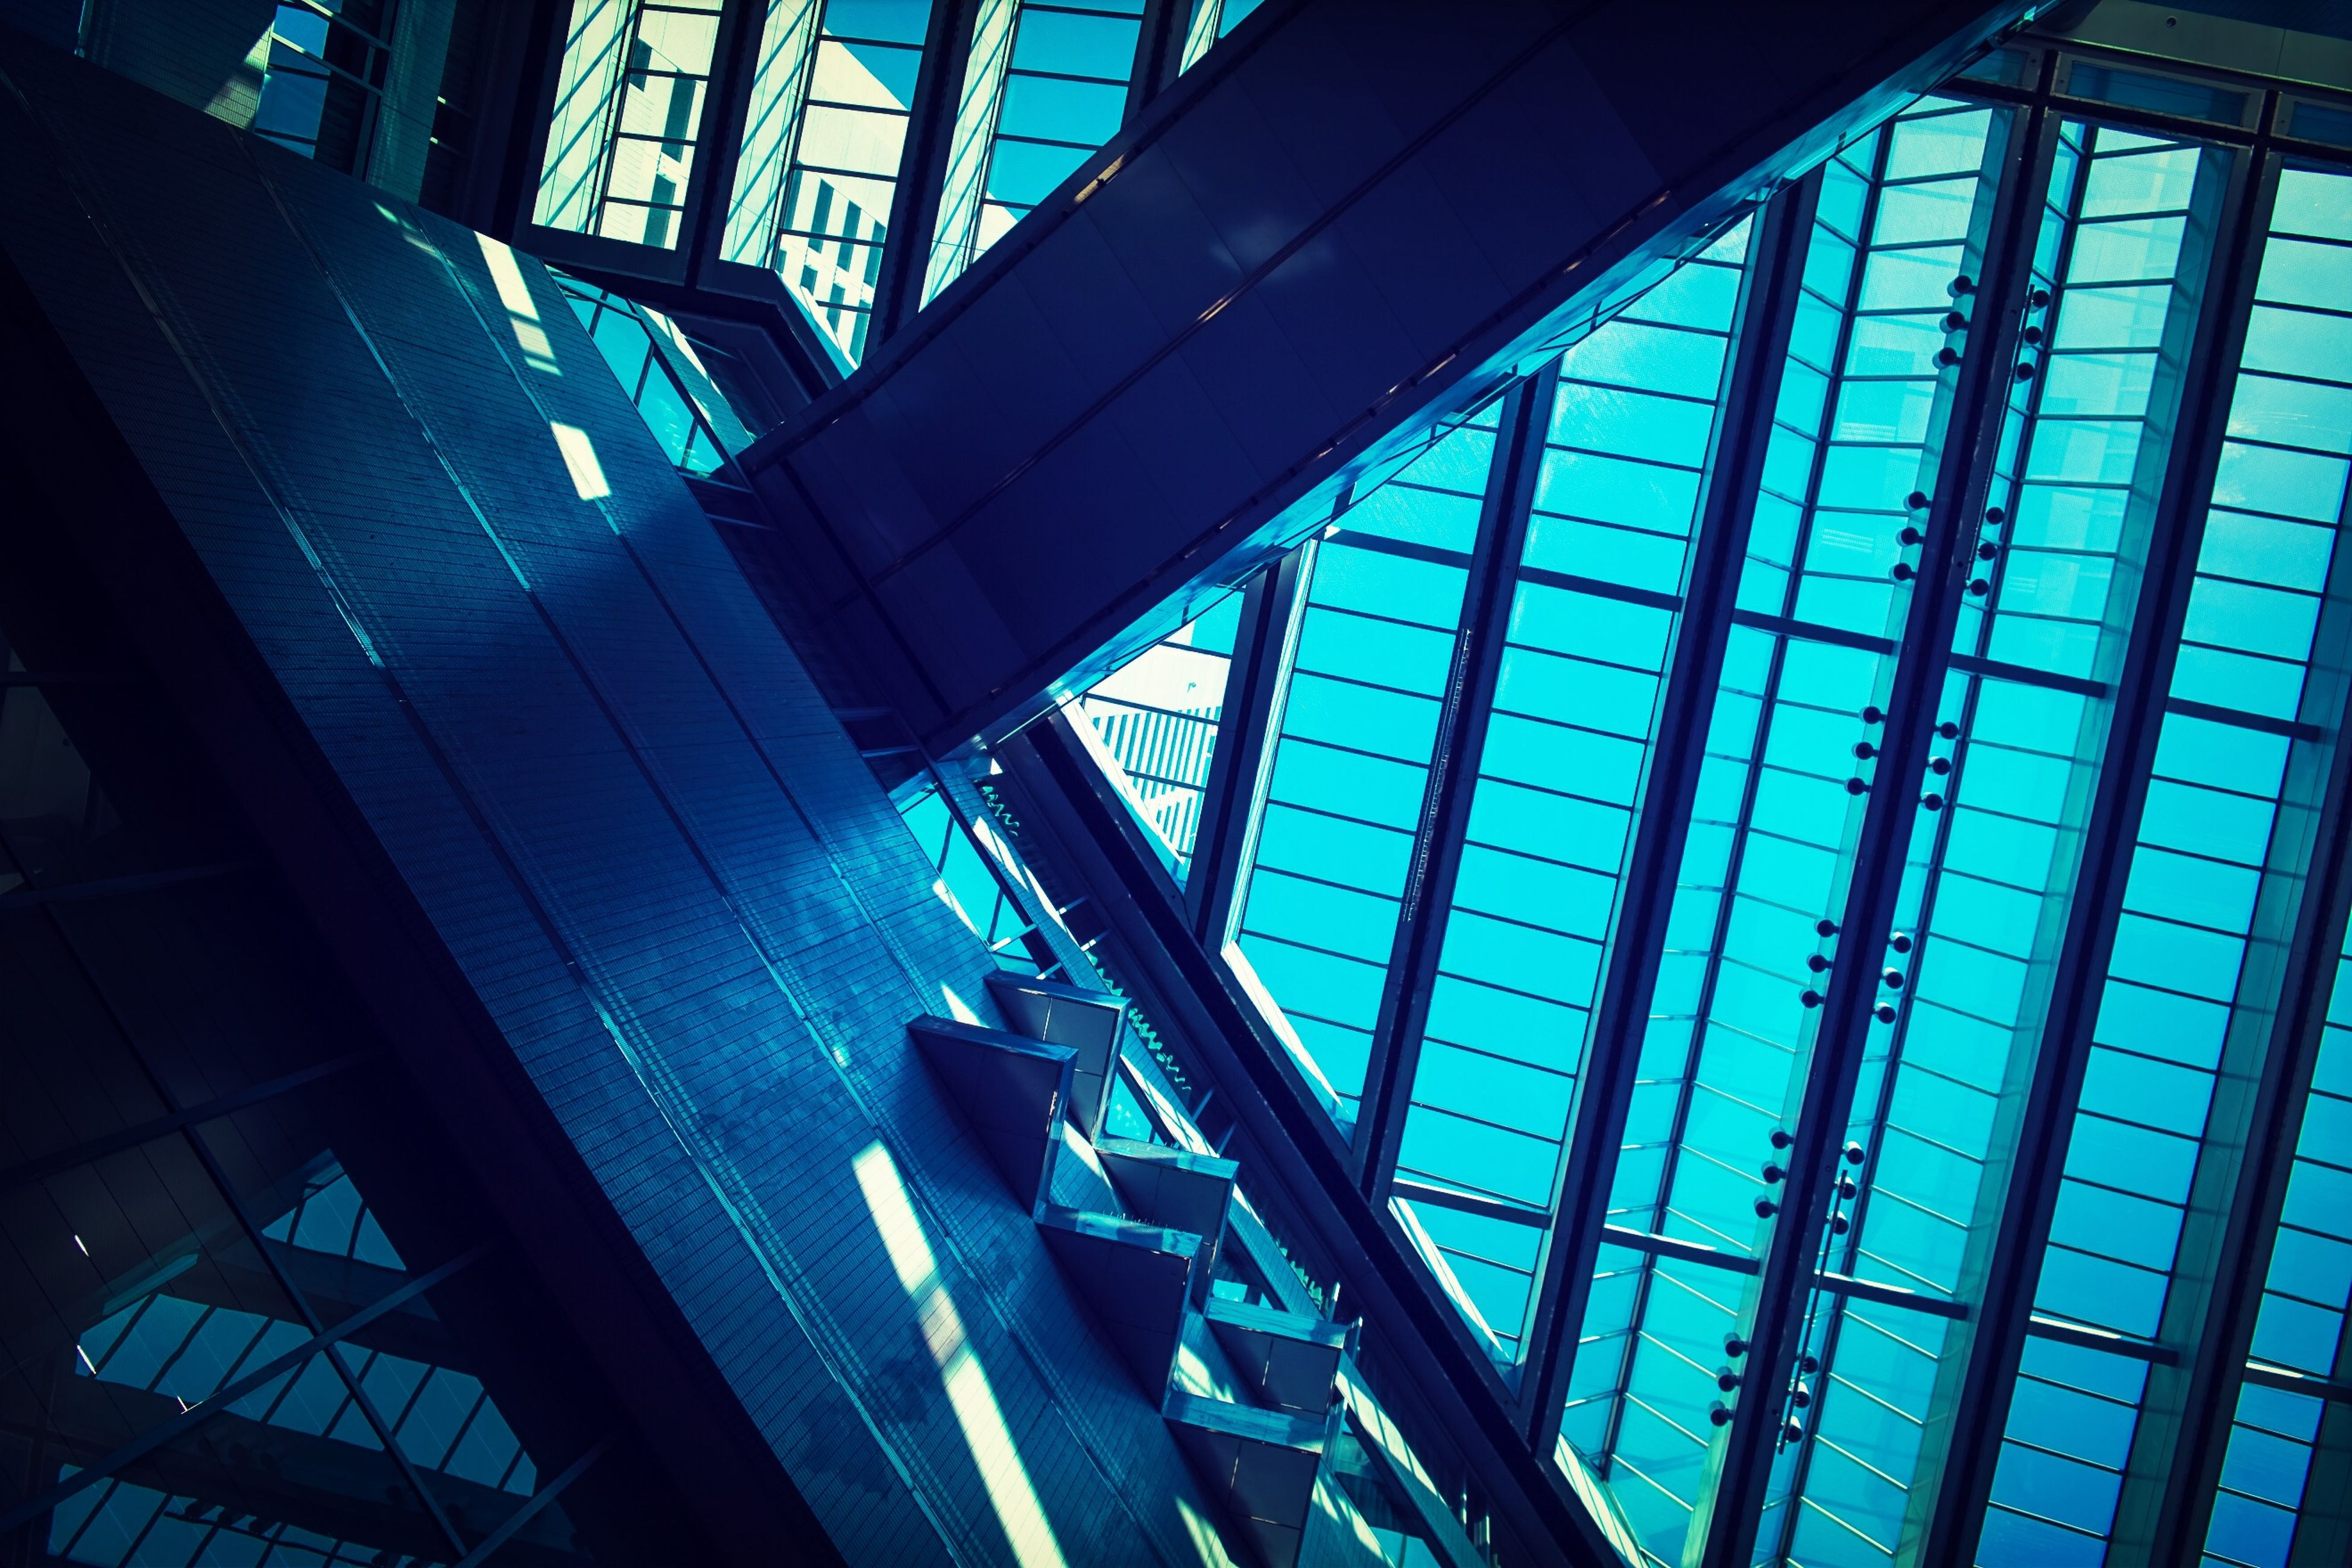 architecture, built structure, low angle view, glass - material, blue, building exterior, indoors, modern, window, transparent, sunlight, pattern, sky, building, day, no people, city, metal, reflection, architectural feature